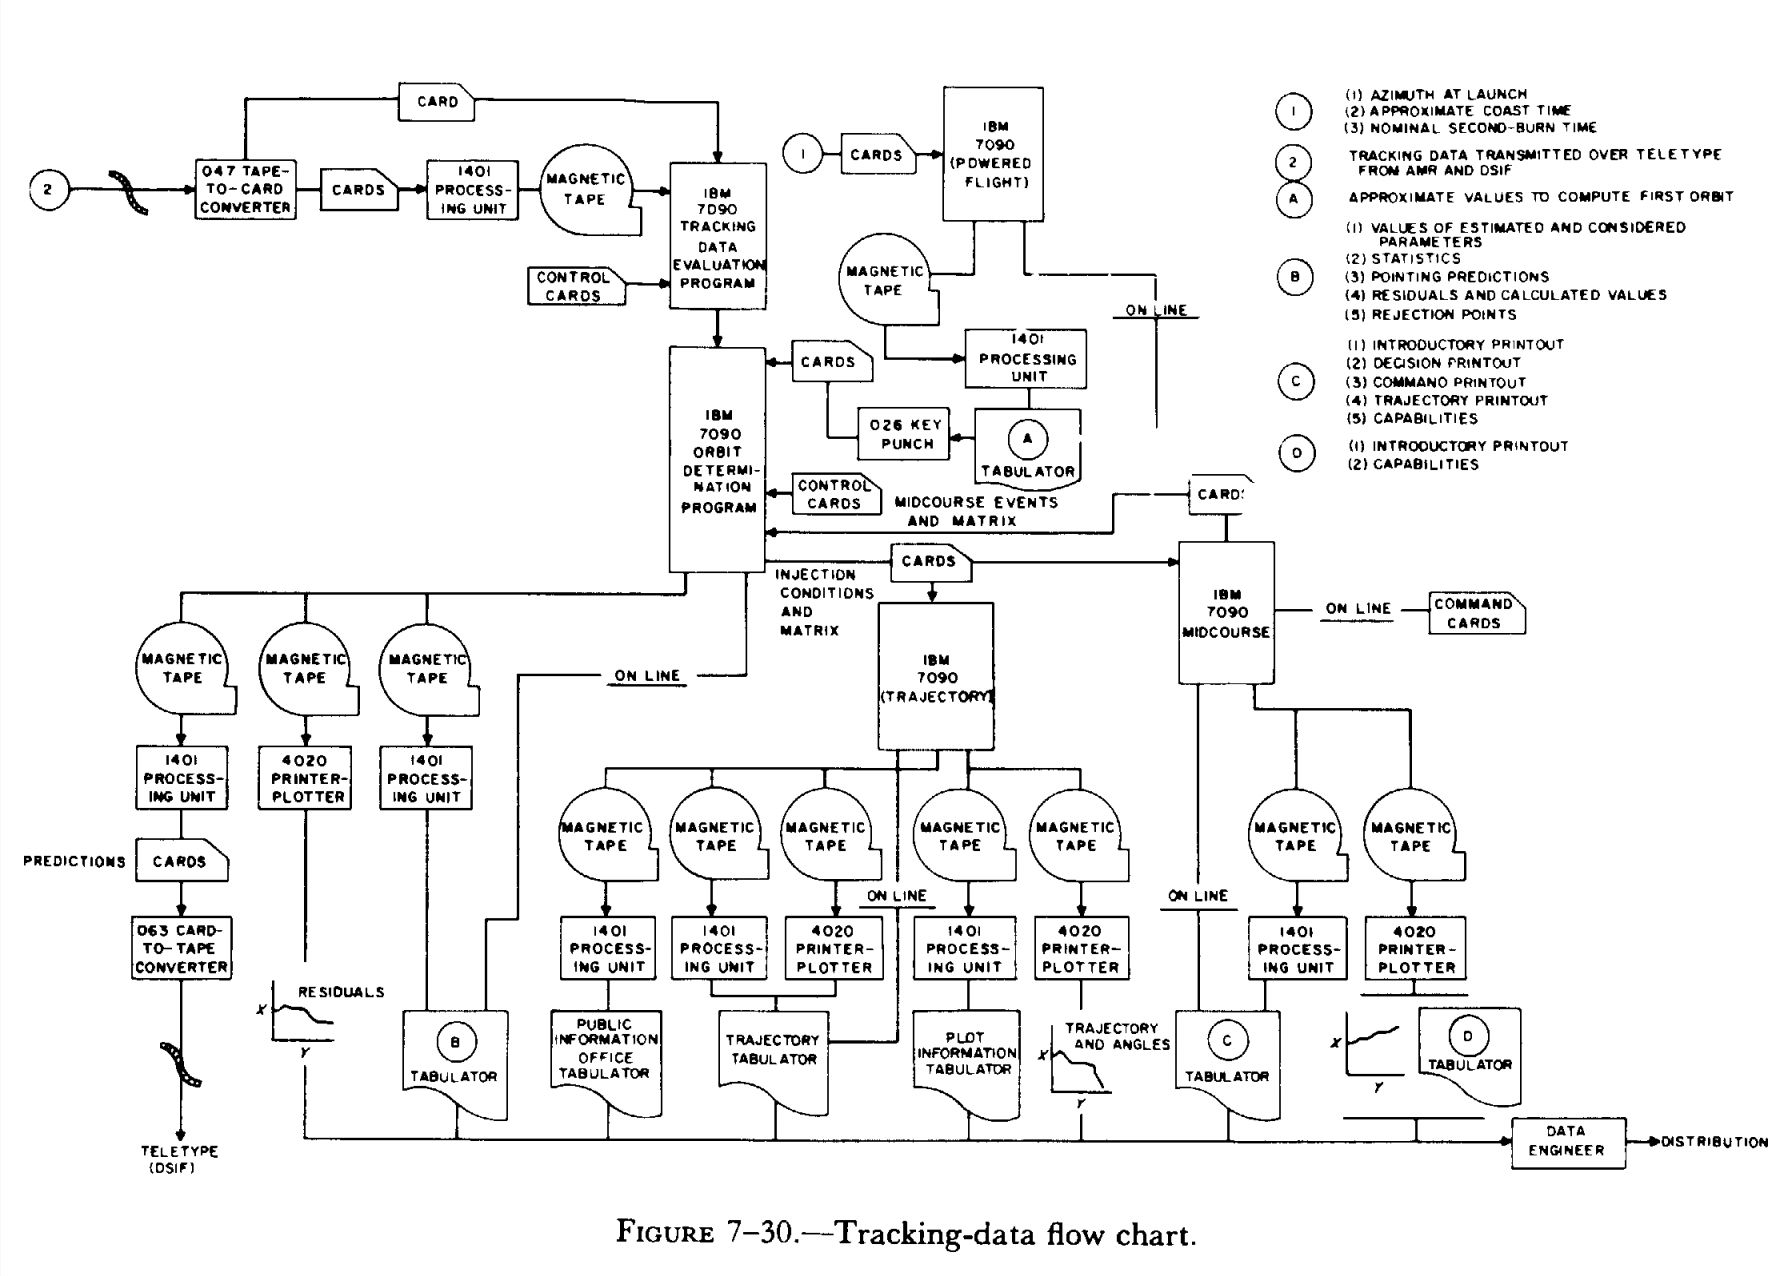 Microsoft Flowchart Tools: Tracking-data flow chart.jpg - Wikimedia Commons,Chart